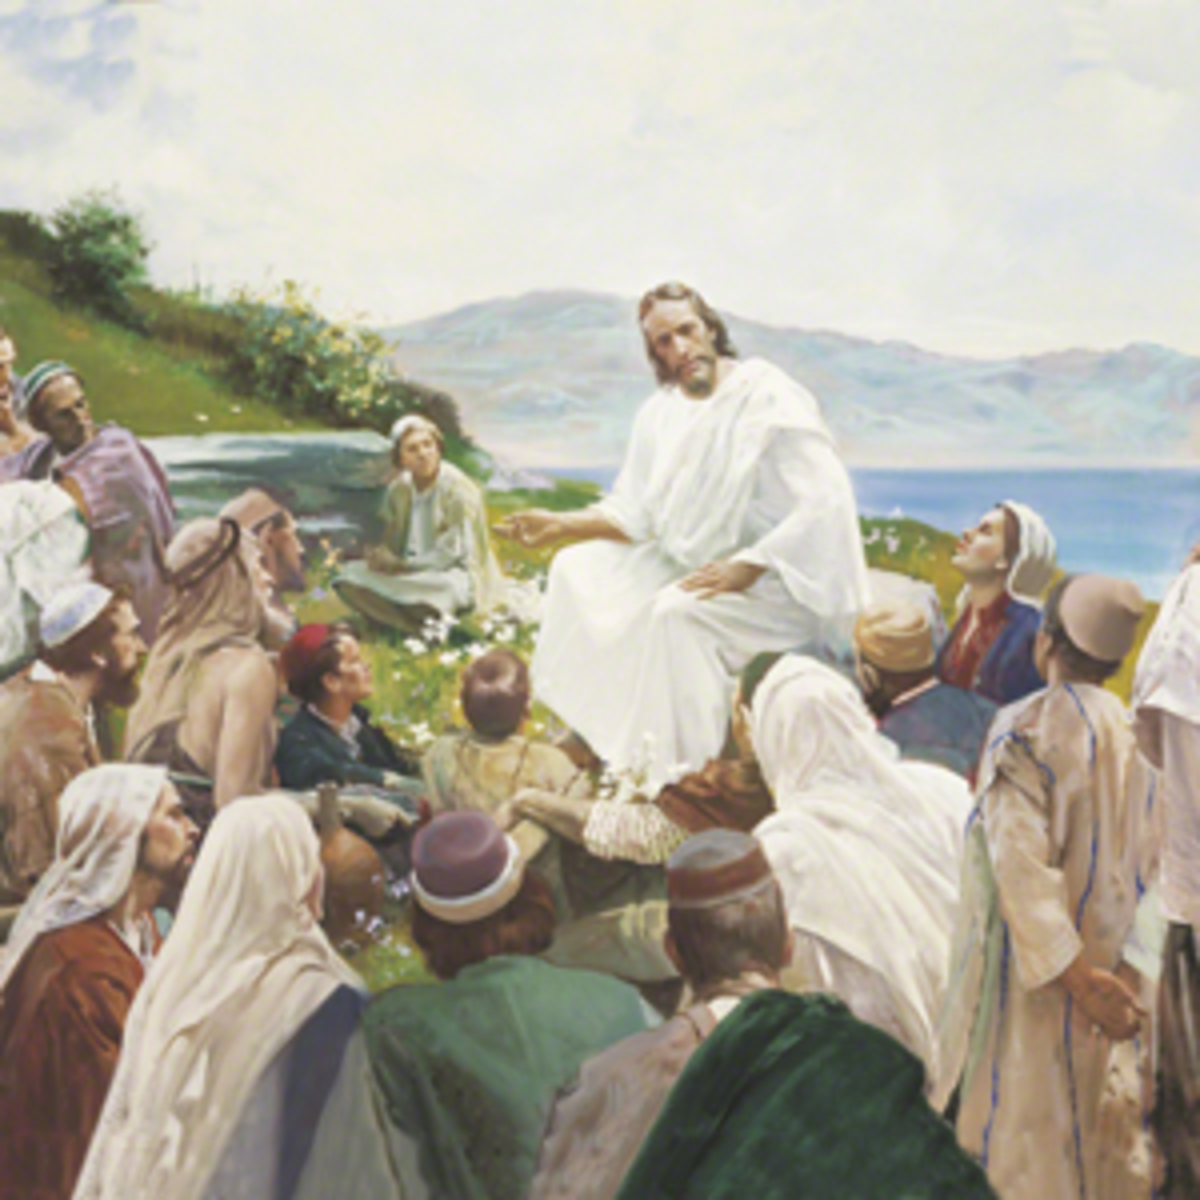 Jesus Christ teaching the people